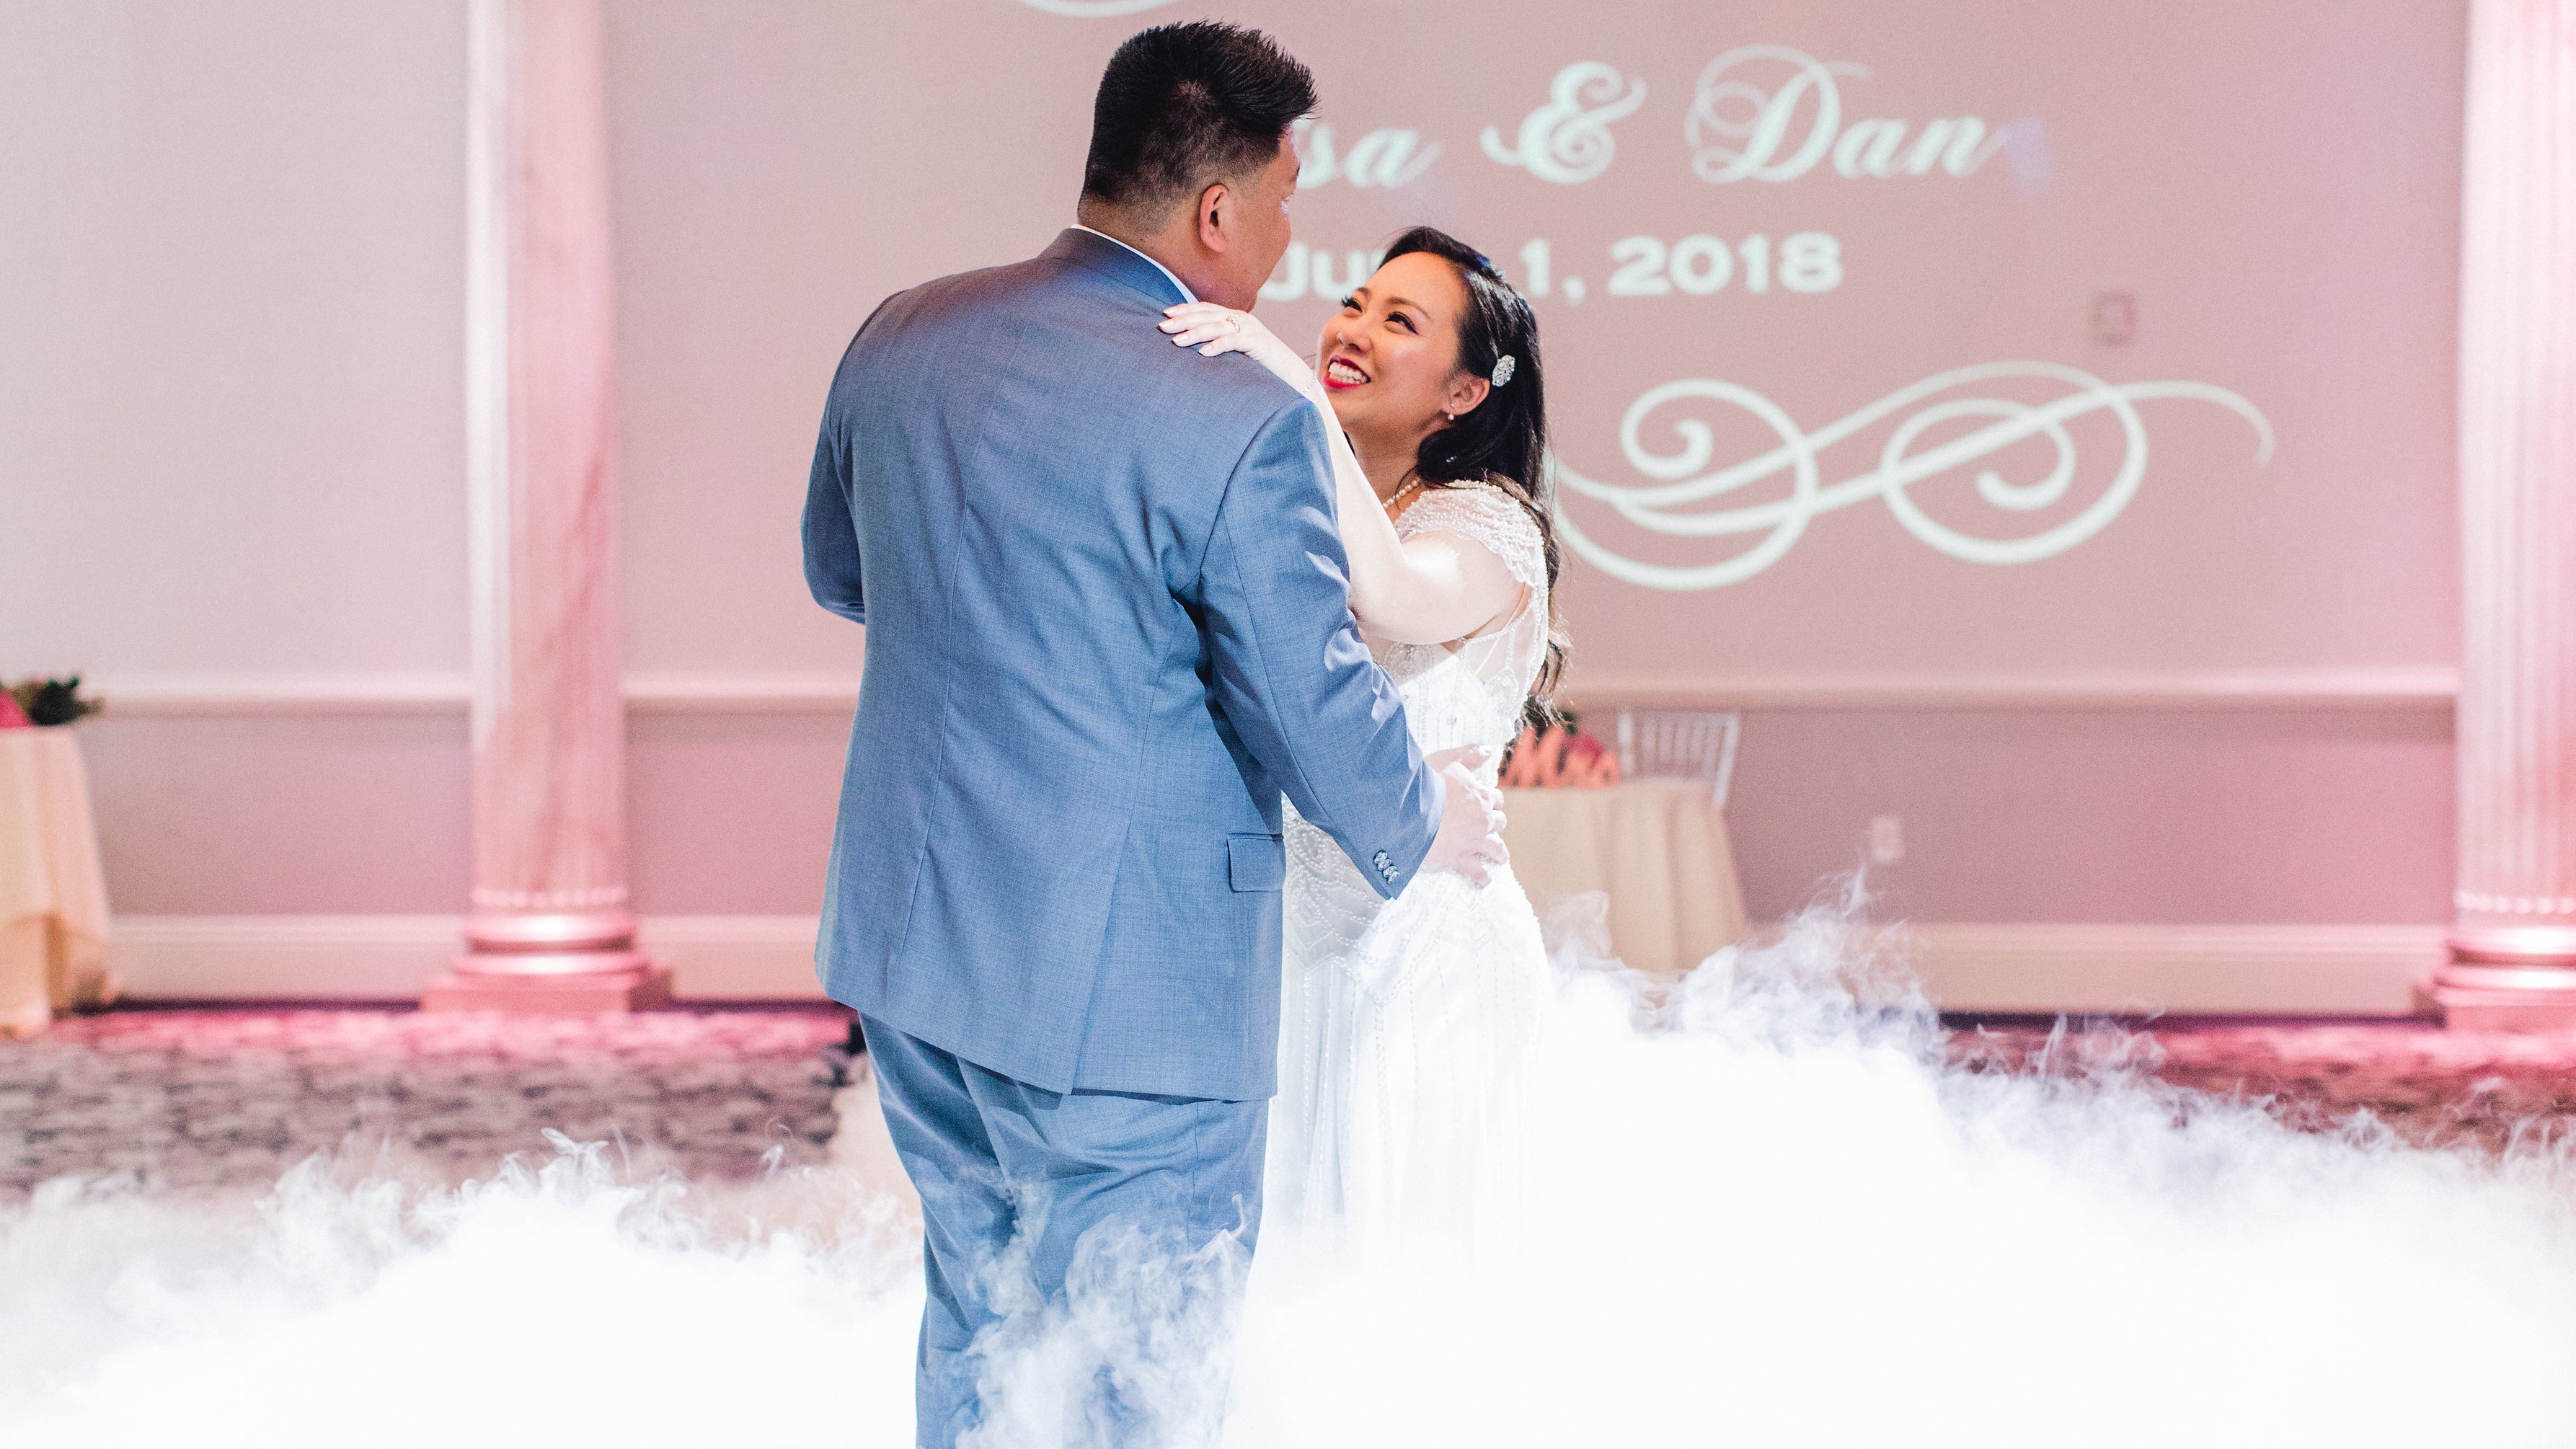 dancing on the clouds, projection mapping, best wedding djs, delaware, wedding entertainment, wilmington de